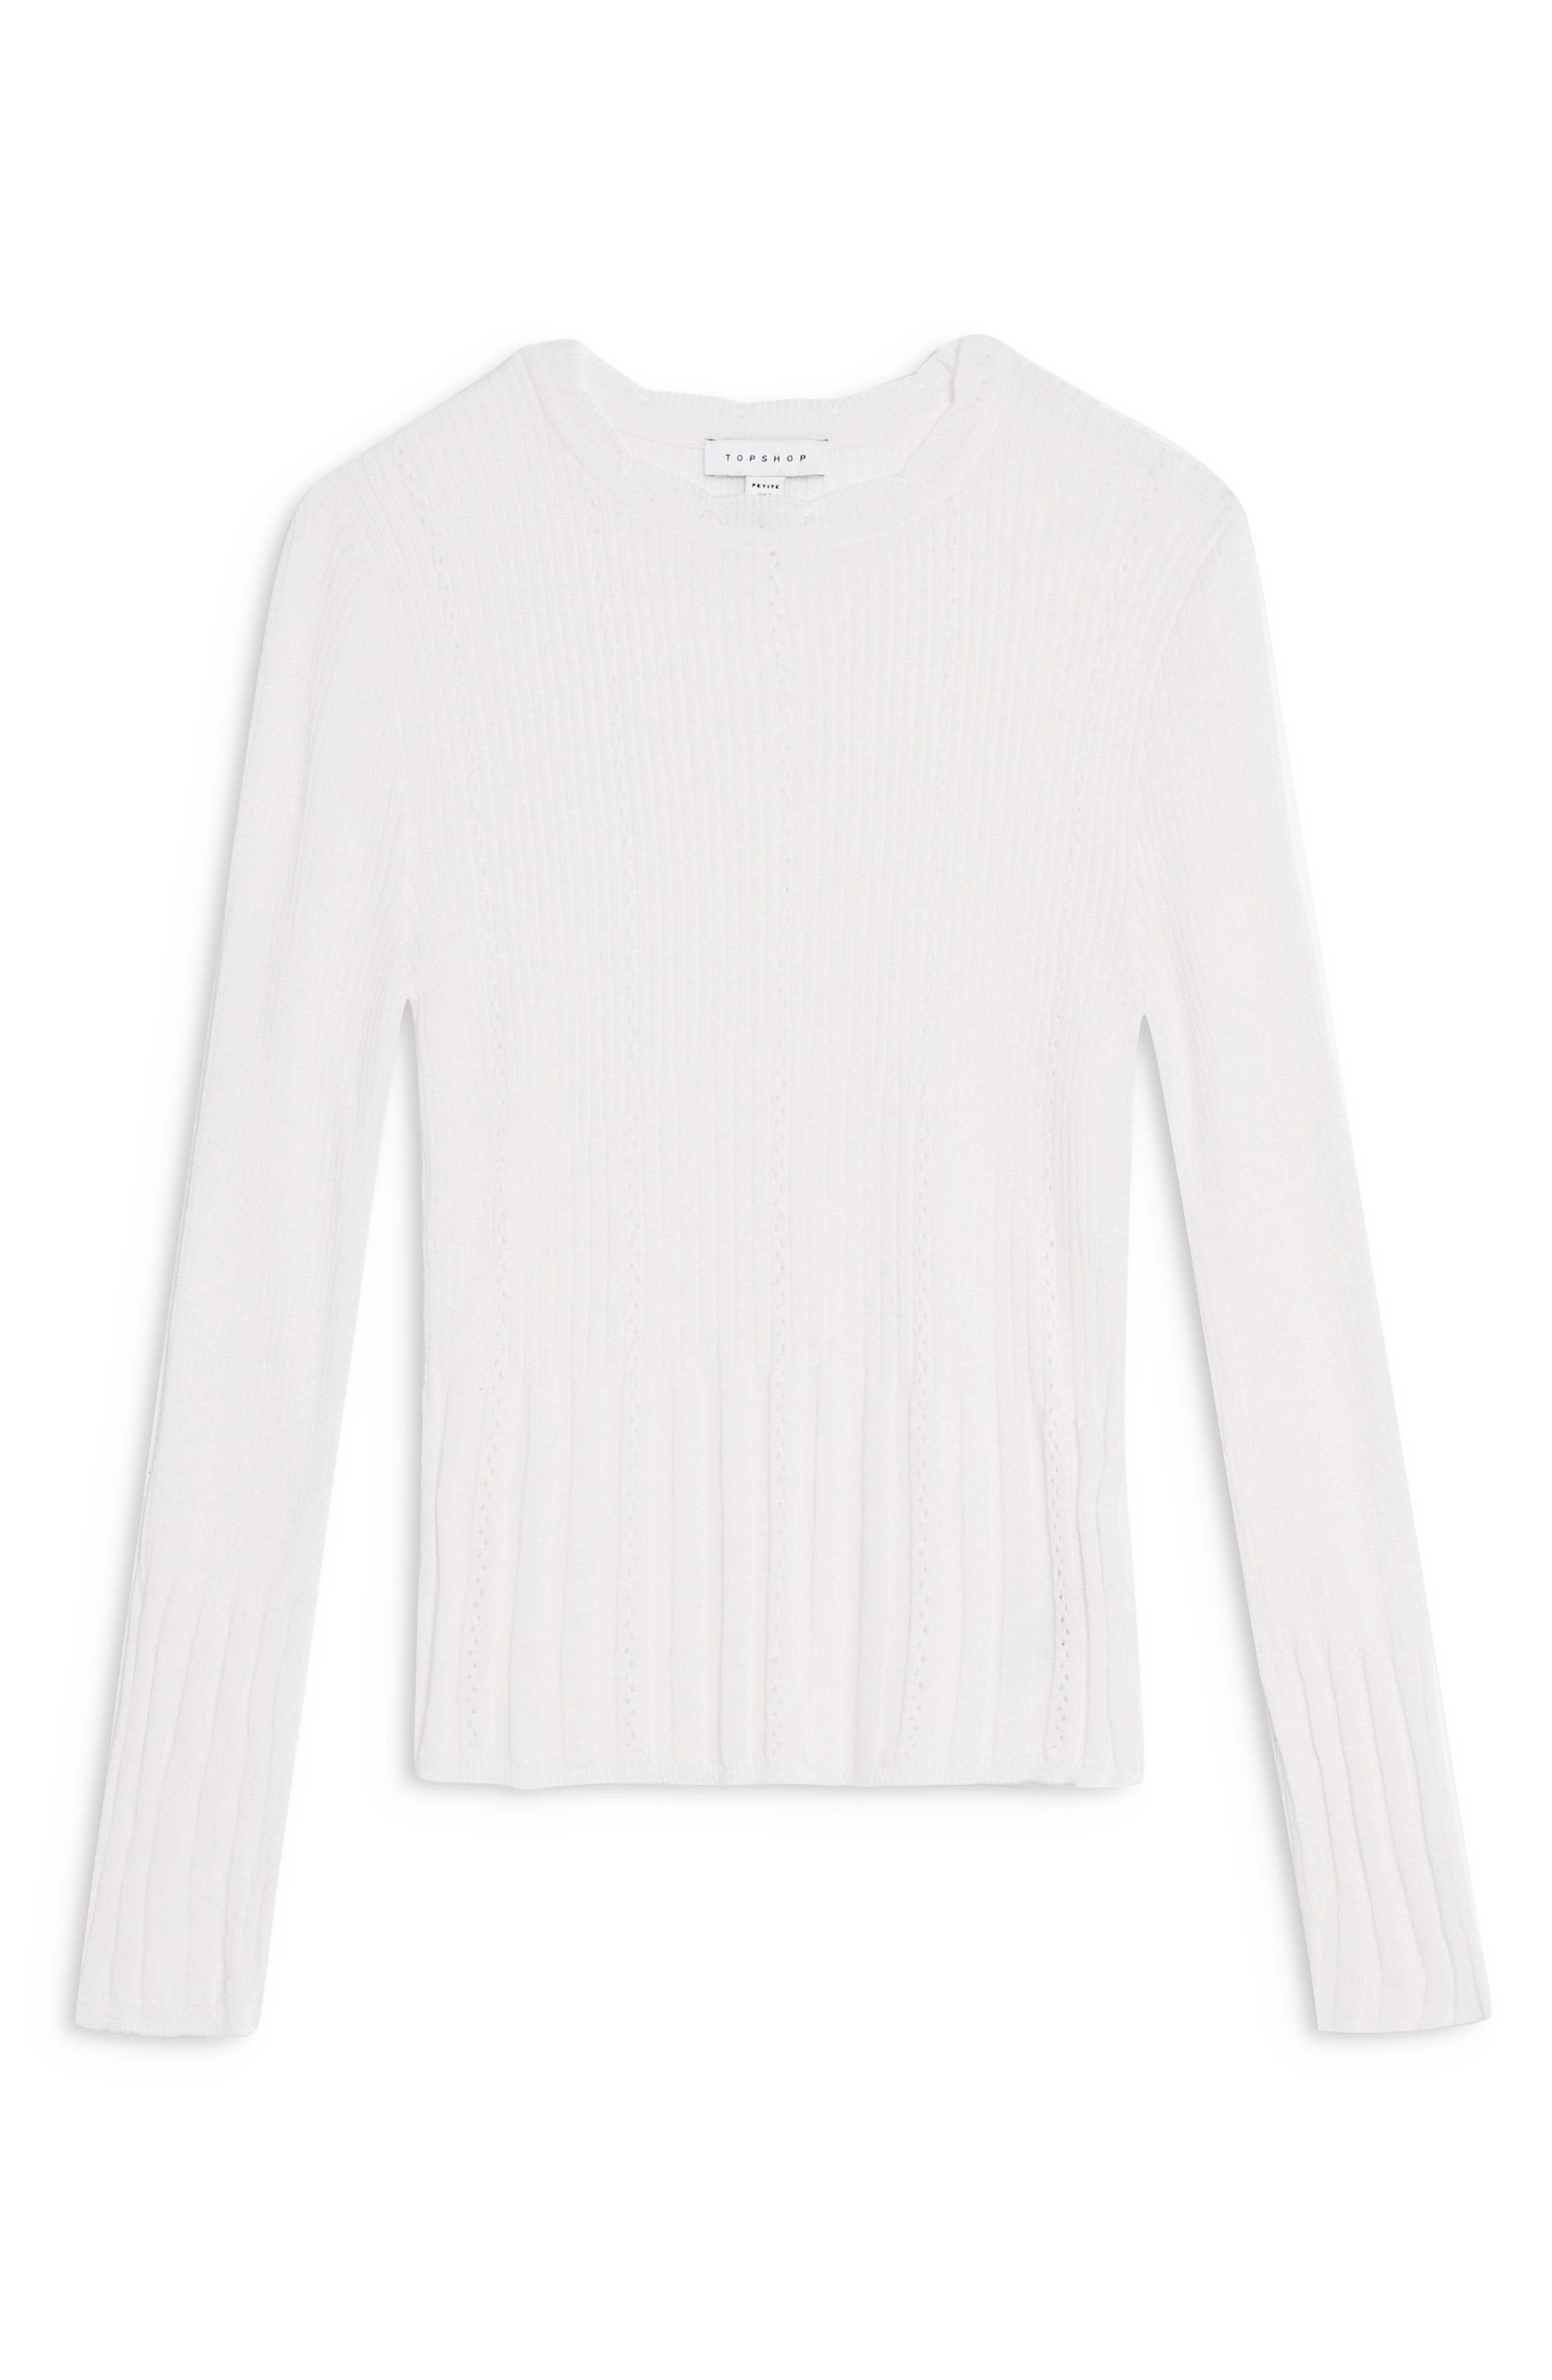 TOPSHOP, Pointelle Sweater, Alternate thumbnail 3, color, IVORY